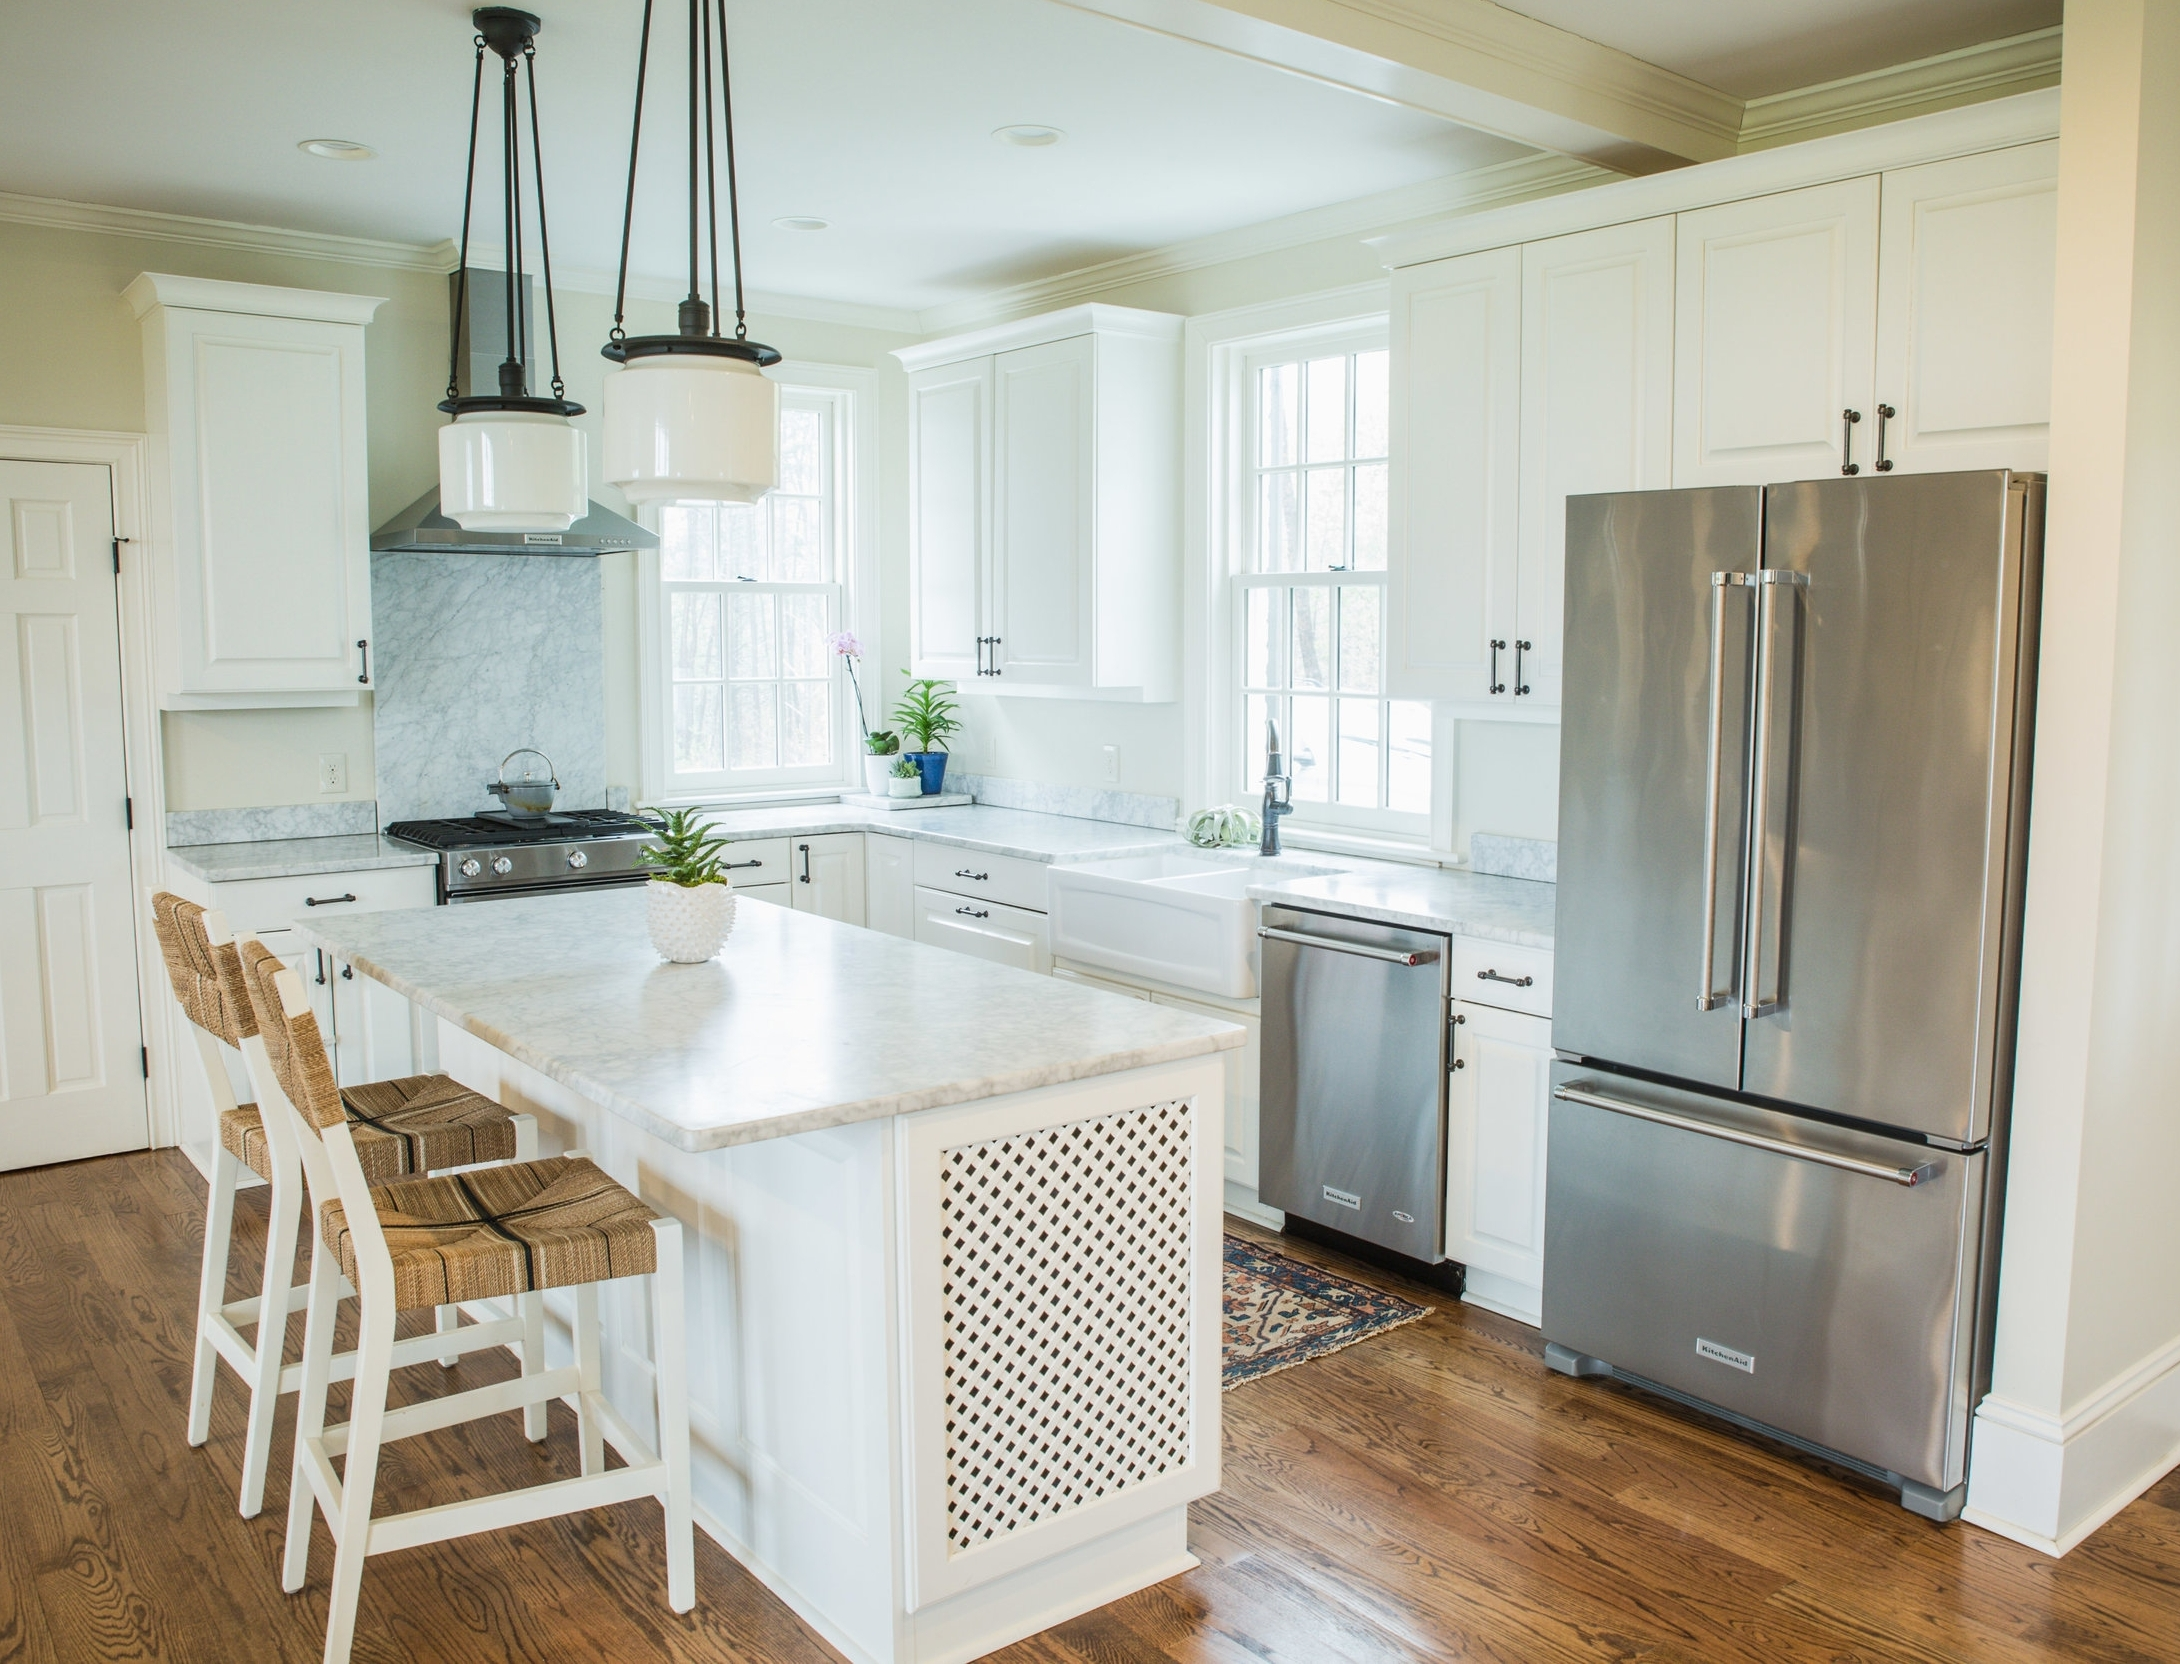 Still deciding? - If you're still wondering whether Emily Mangus Interiors can fit your project, style, and budget needs, read what her previous clients are saying about their experience.